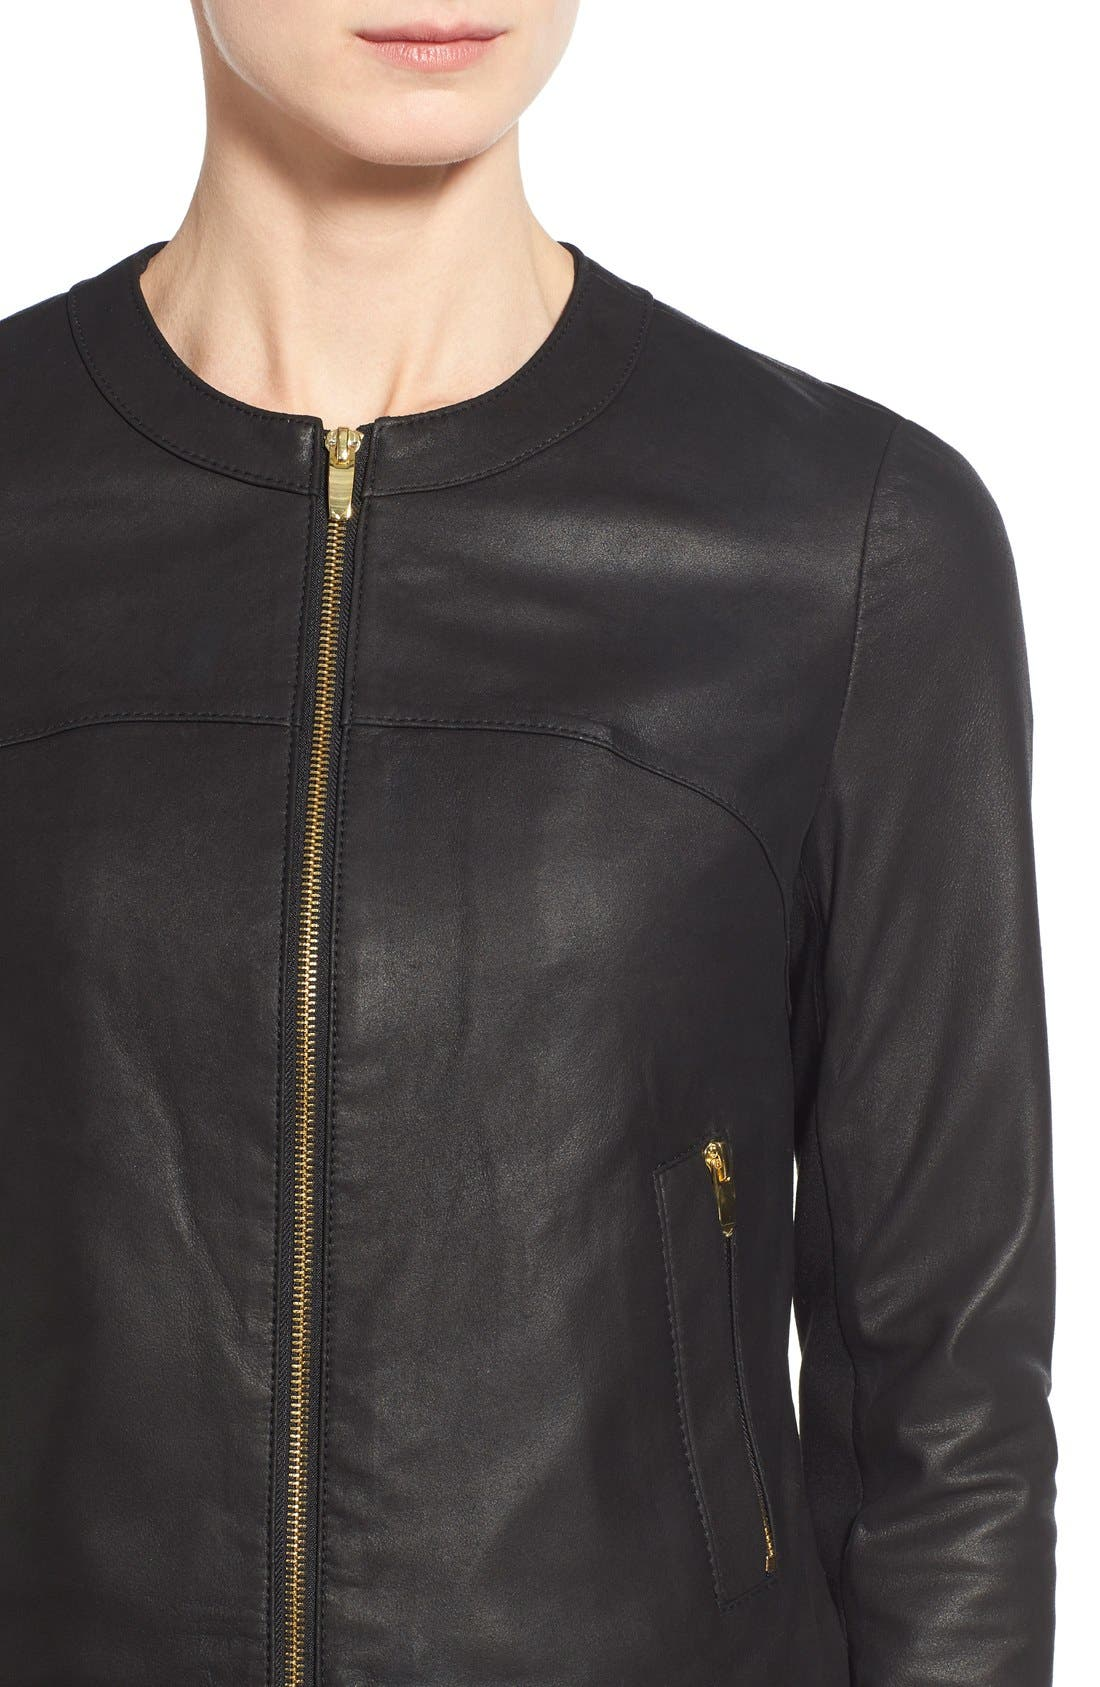 Lambskin Leather & Knit Zip Front Collarless Jacket,                             Alternate thumbnail 5, color,                             001